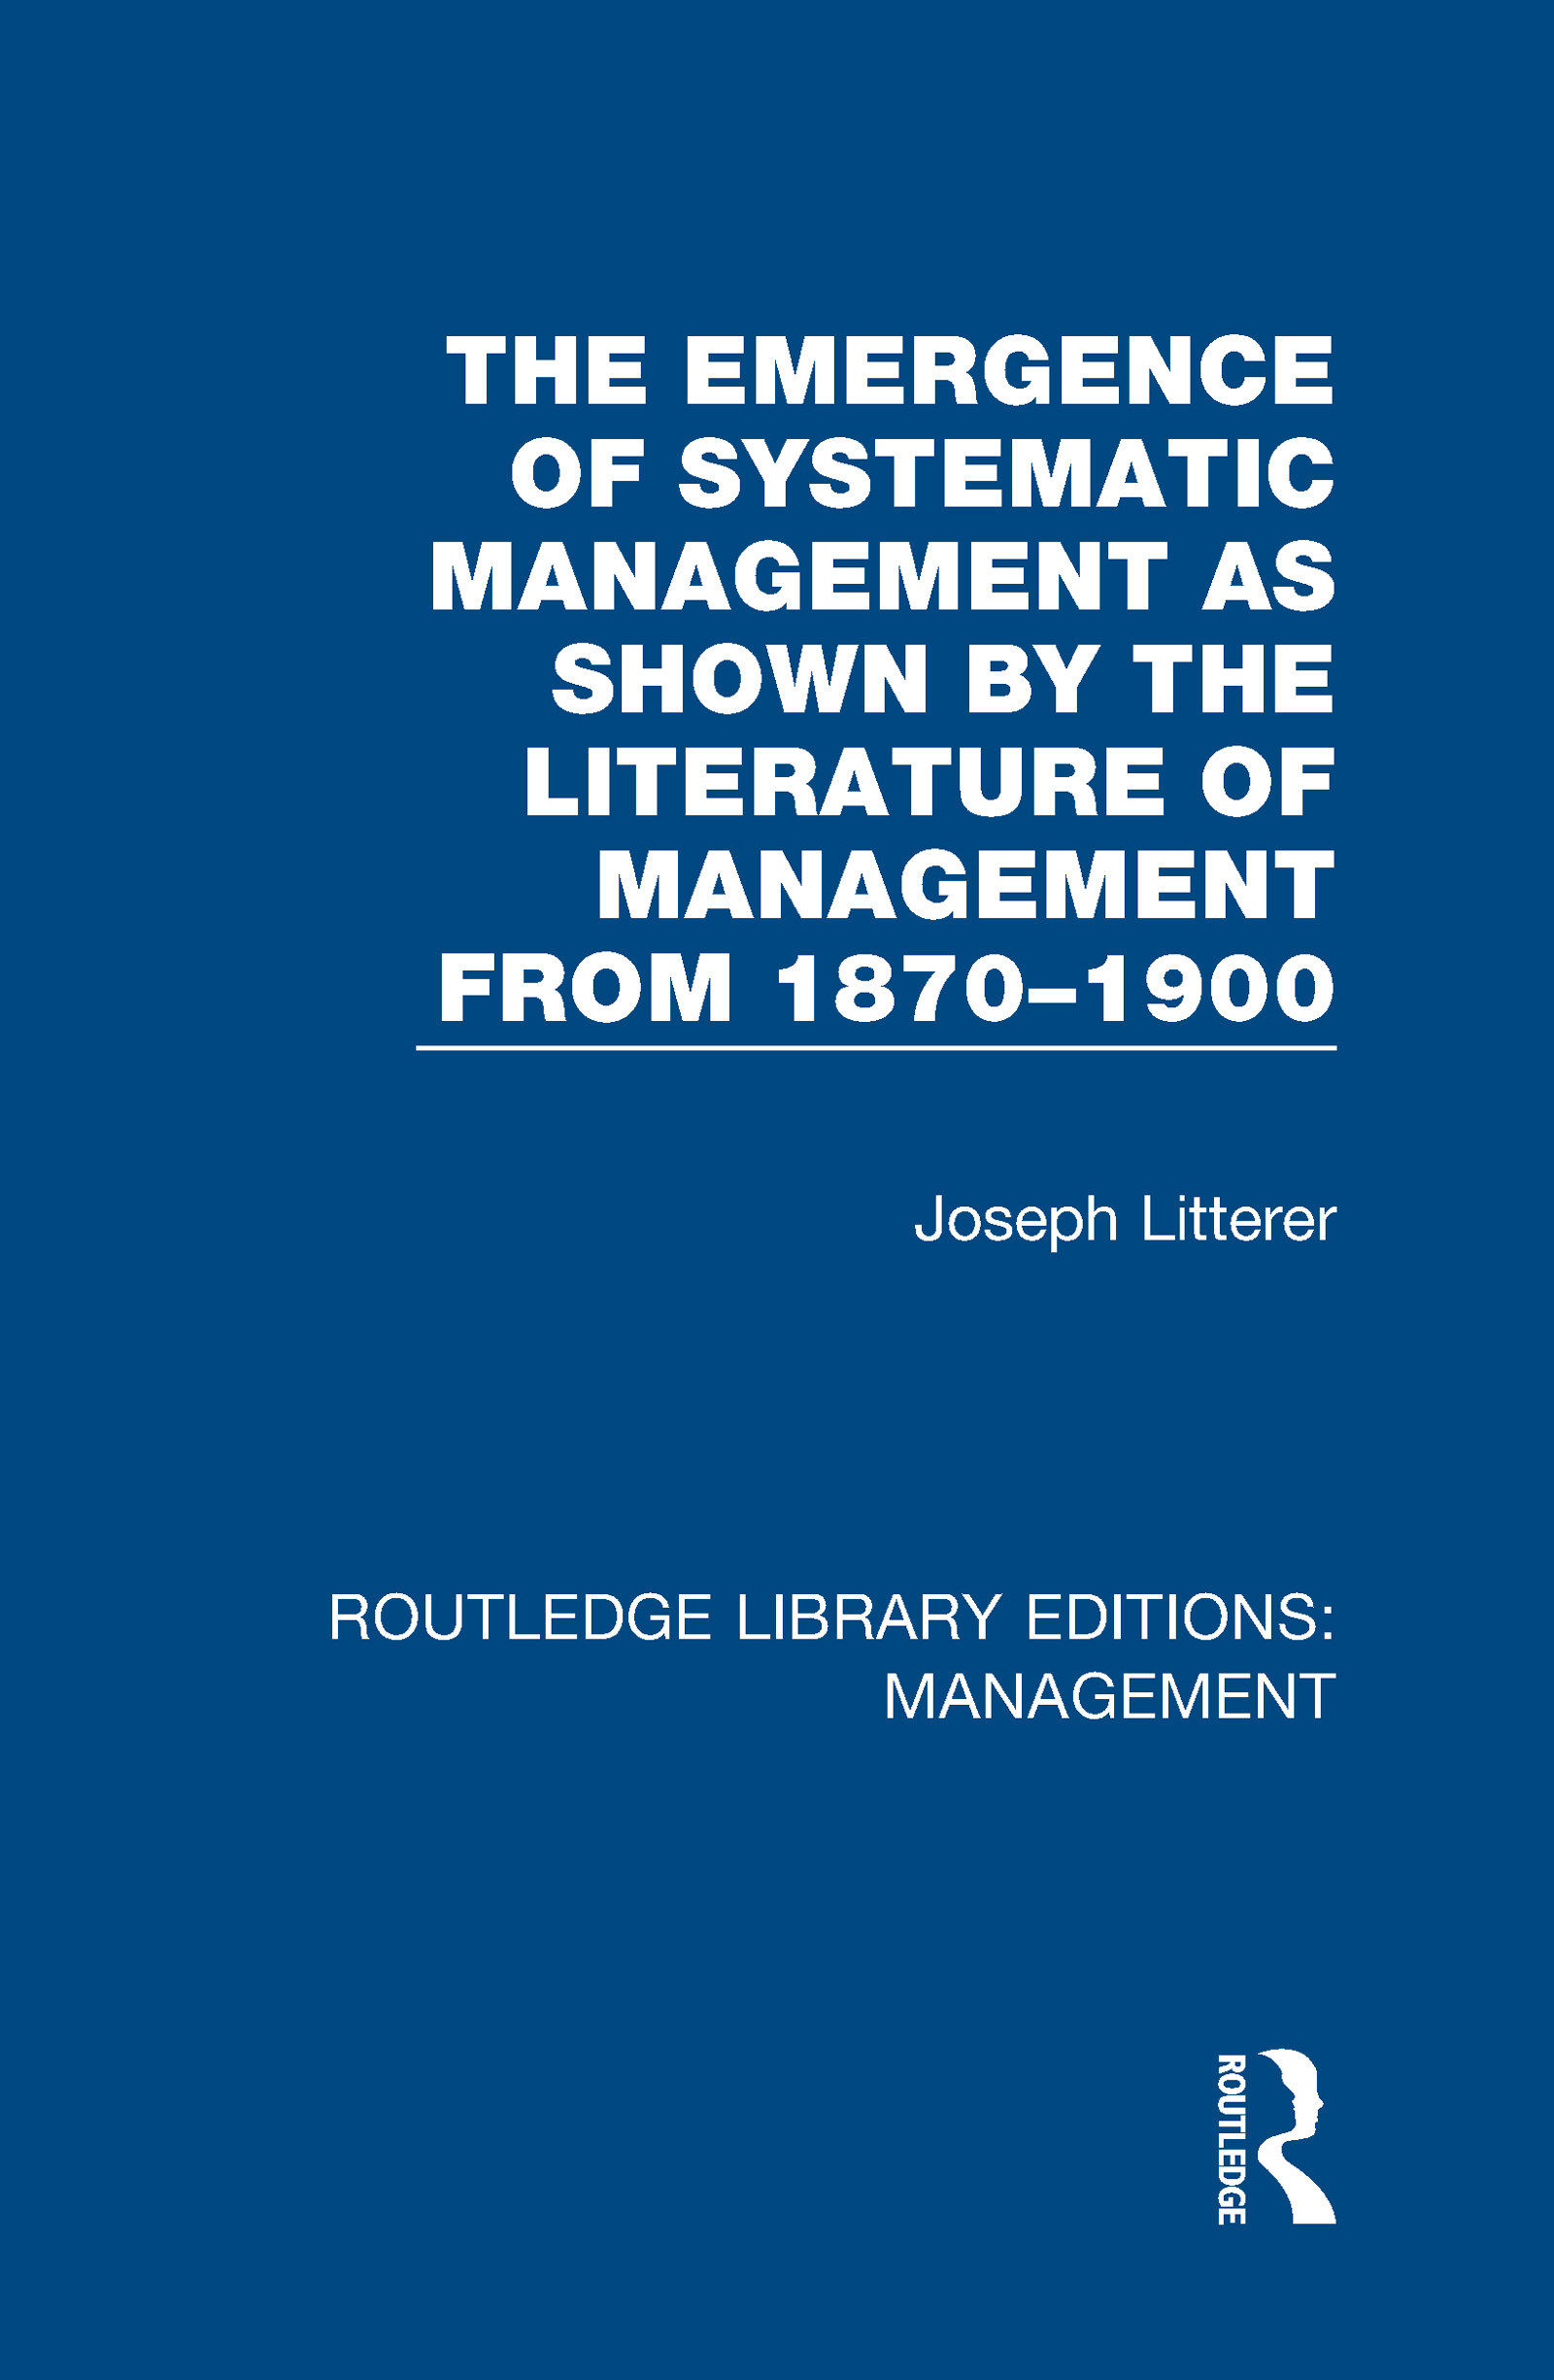 The Emergence of Systematic Management as Shown by the Literature of Management from 1870-1900 book cover